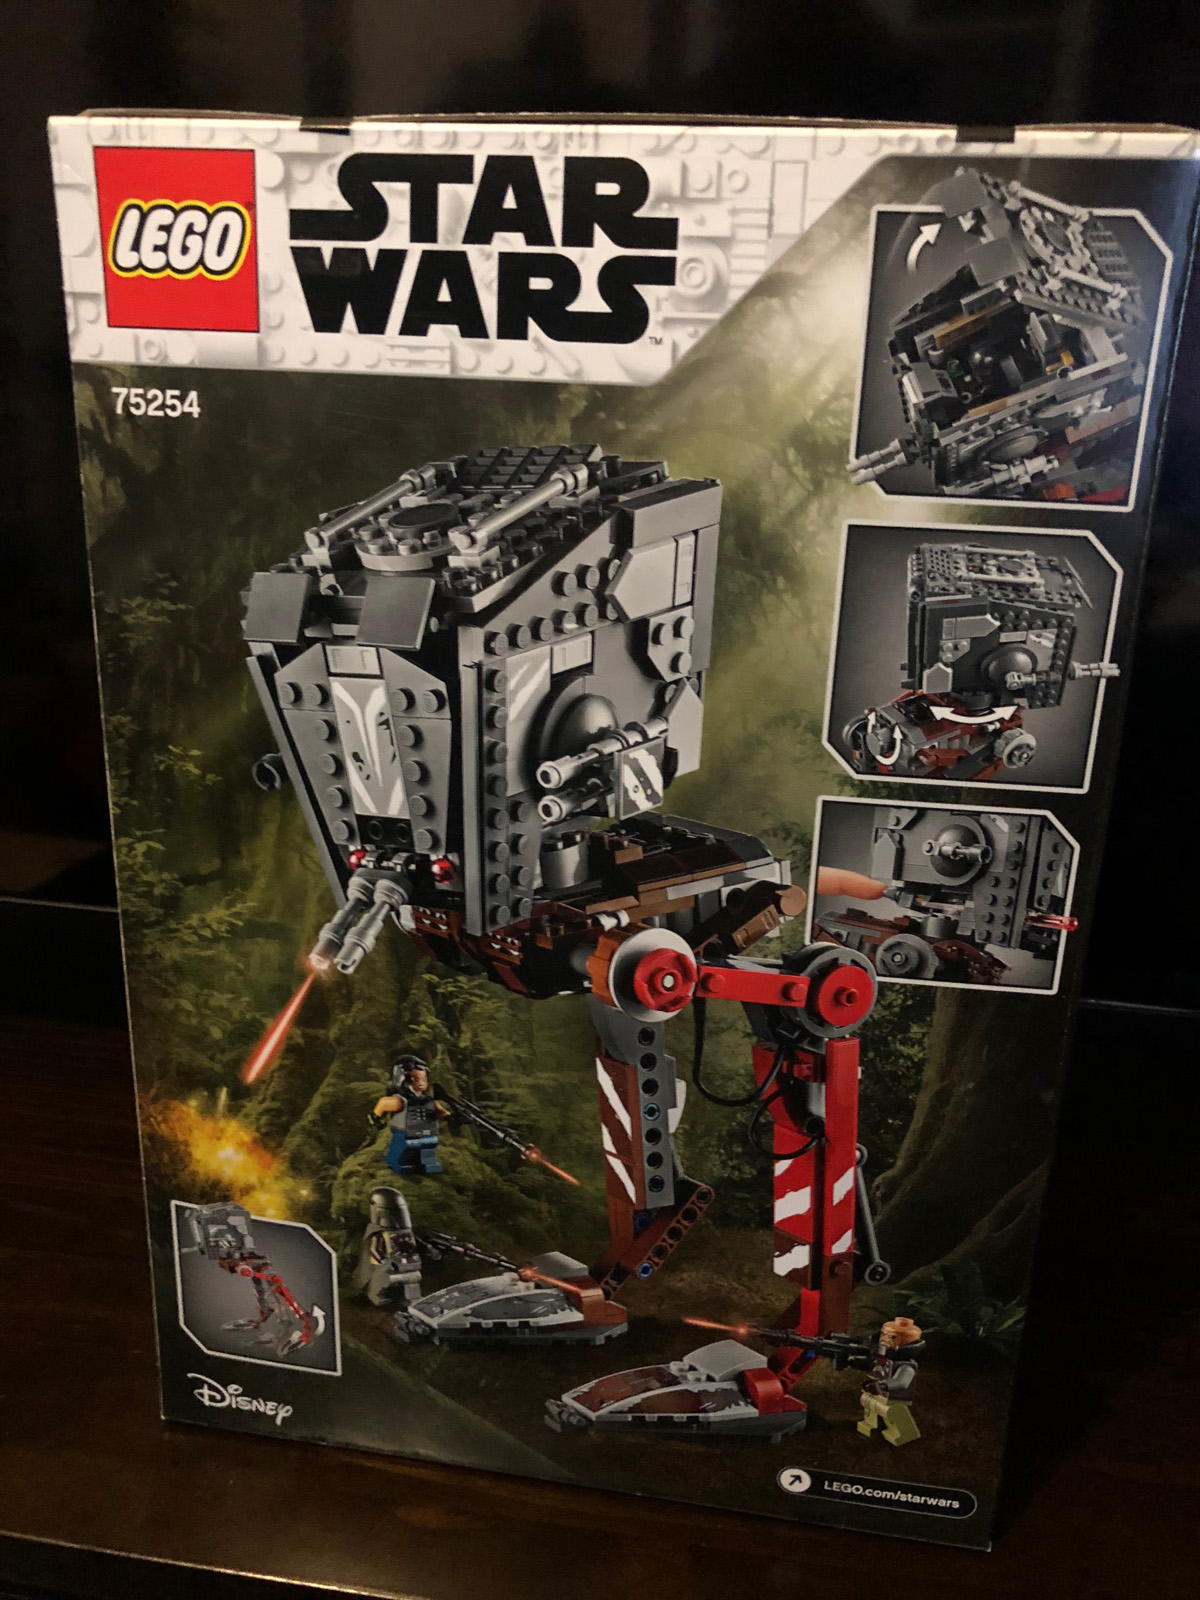 LEGO Star Wars AT-ST Raider The Mandalorian